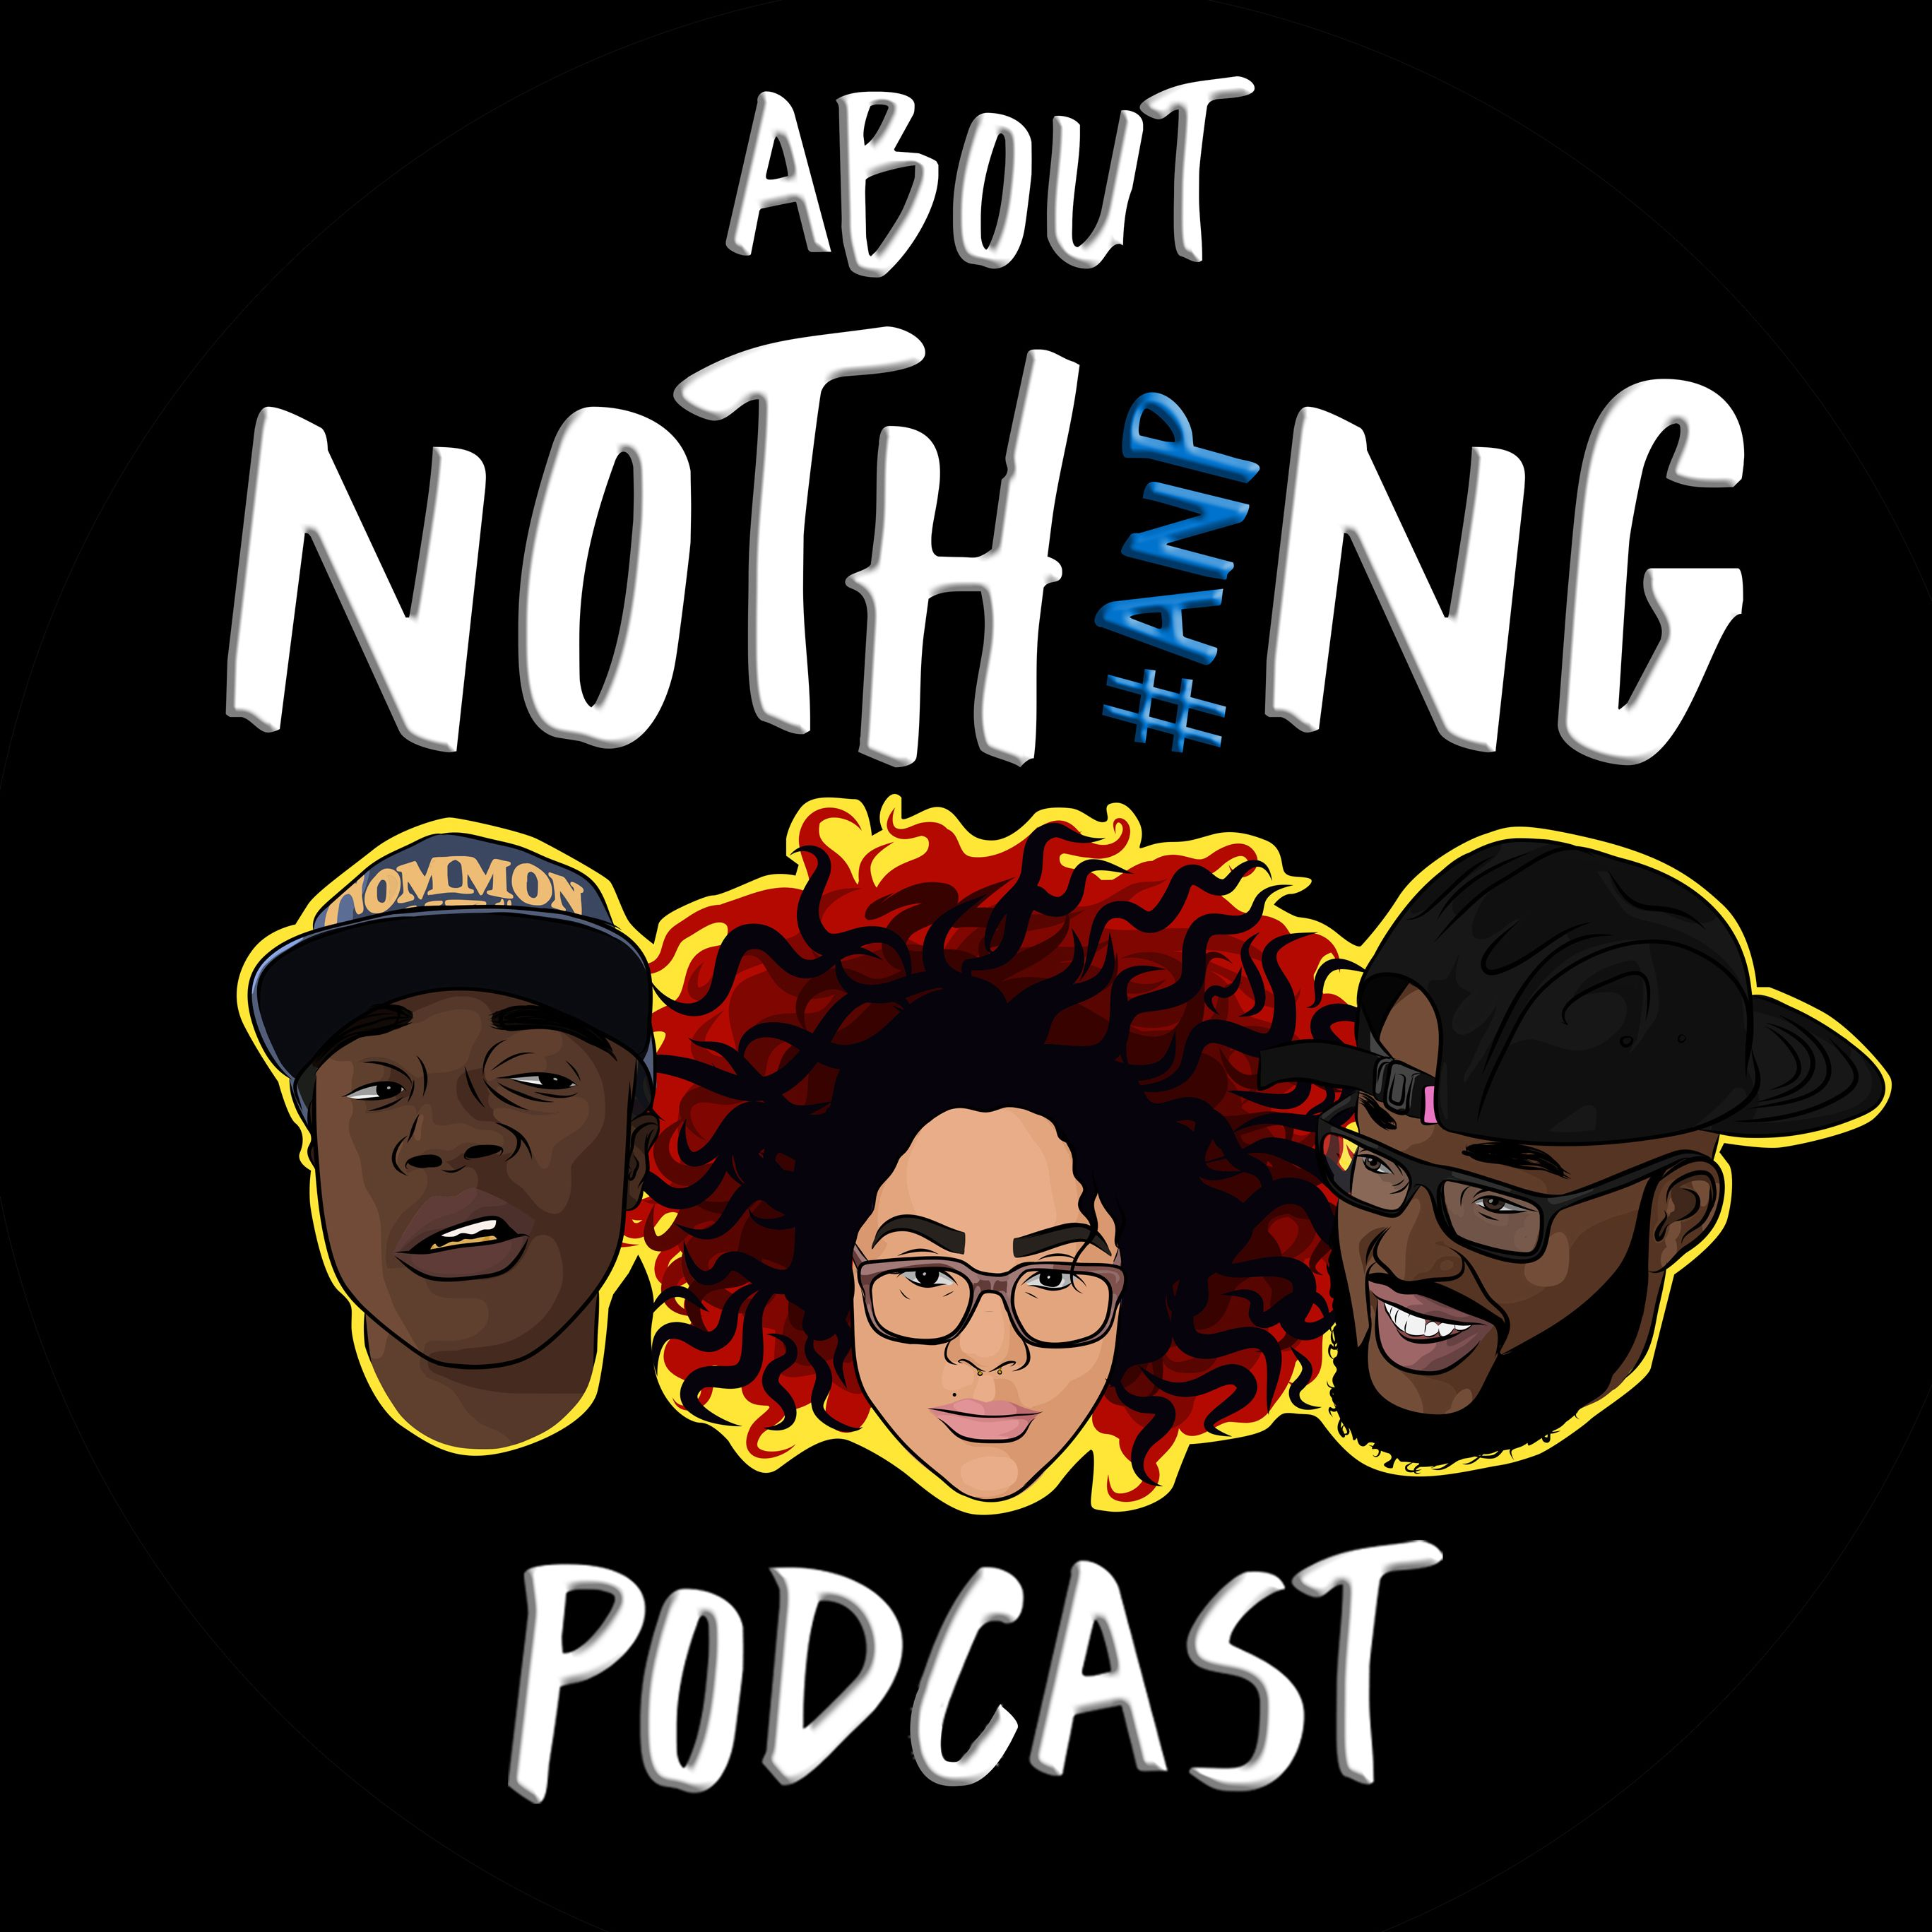 About Nothing Podcast